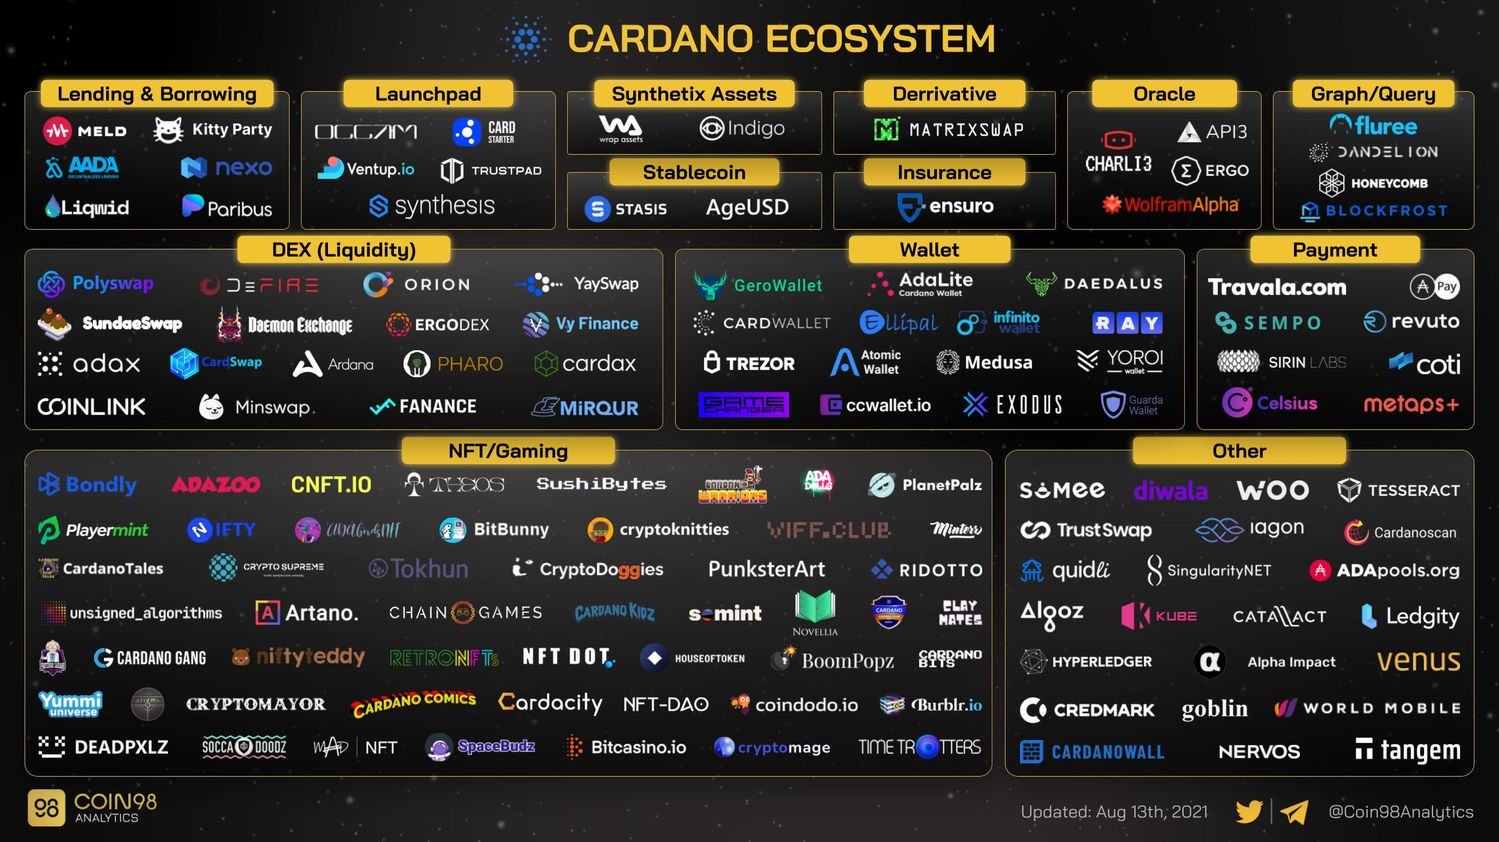 Cardano Ecosystem from Coin98